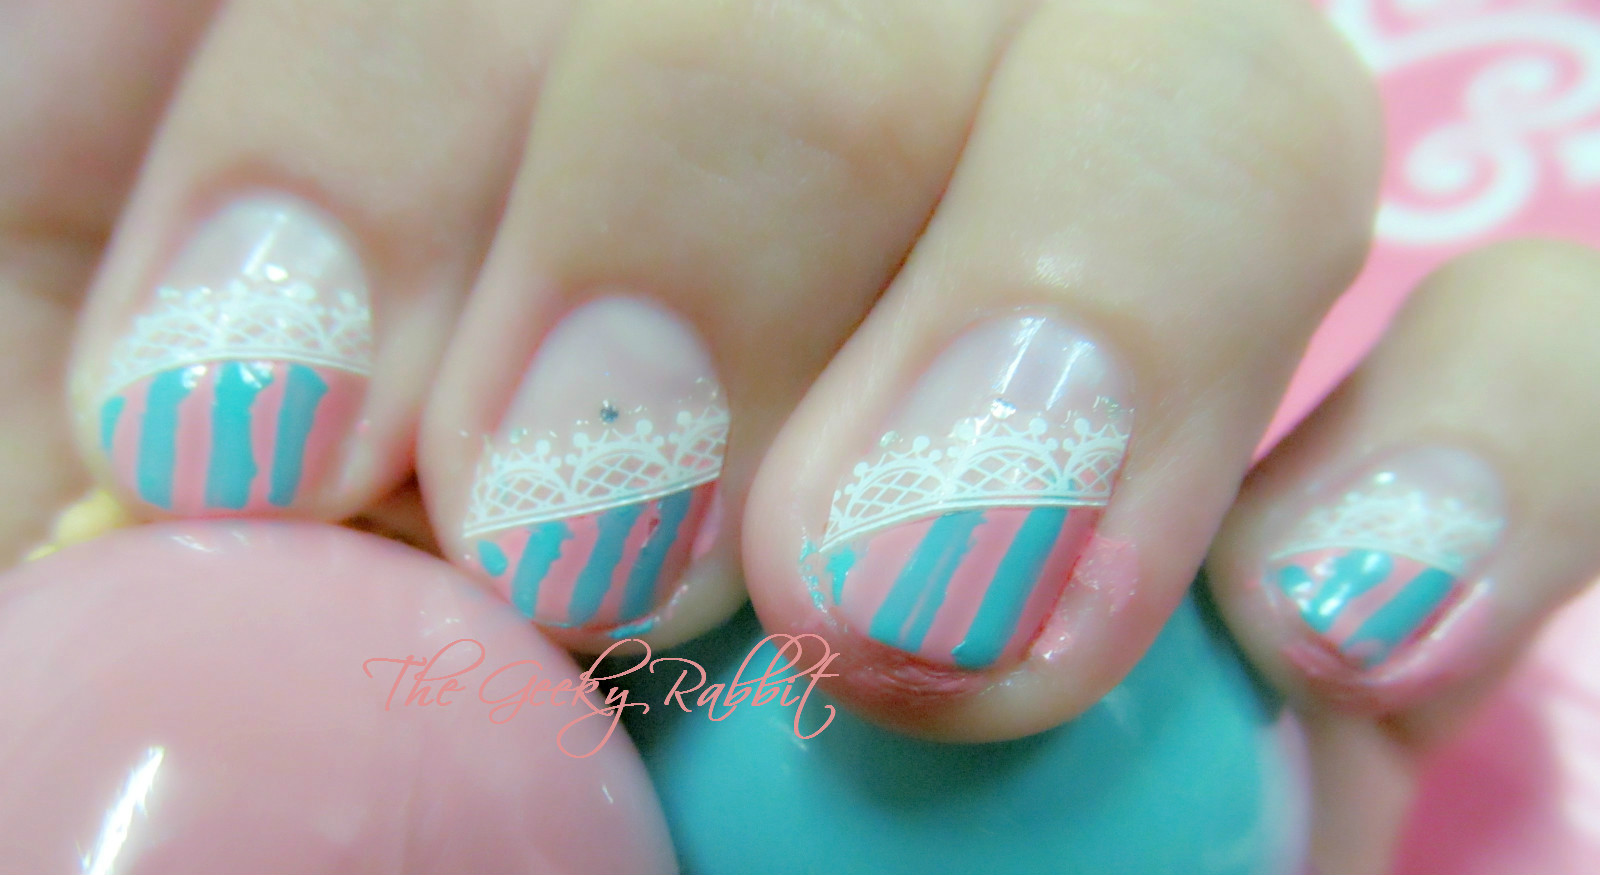 The geeky rabbit etude house ice cream nails with lace nail art etude house ice cream nails with lace nail art tutorial prinsesfo Image collections